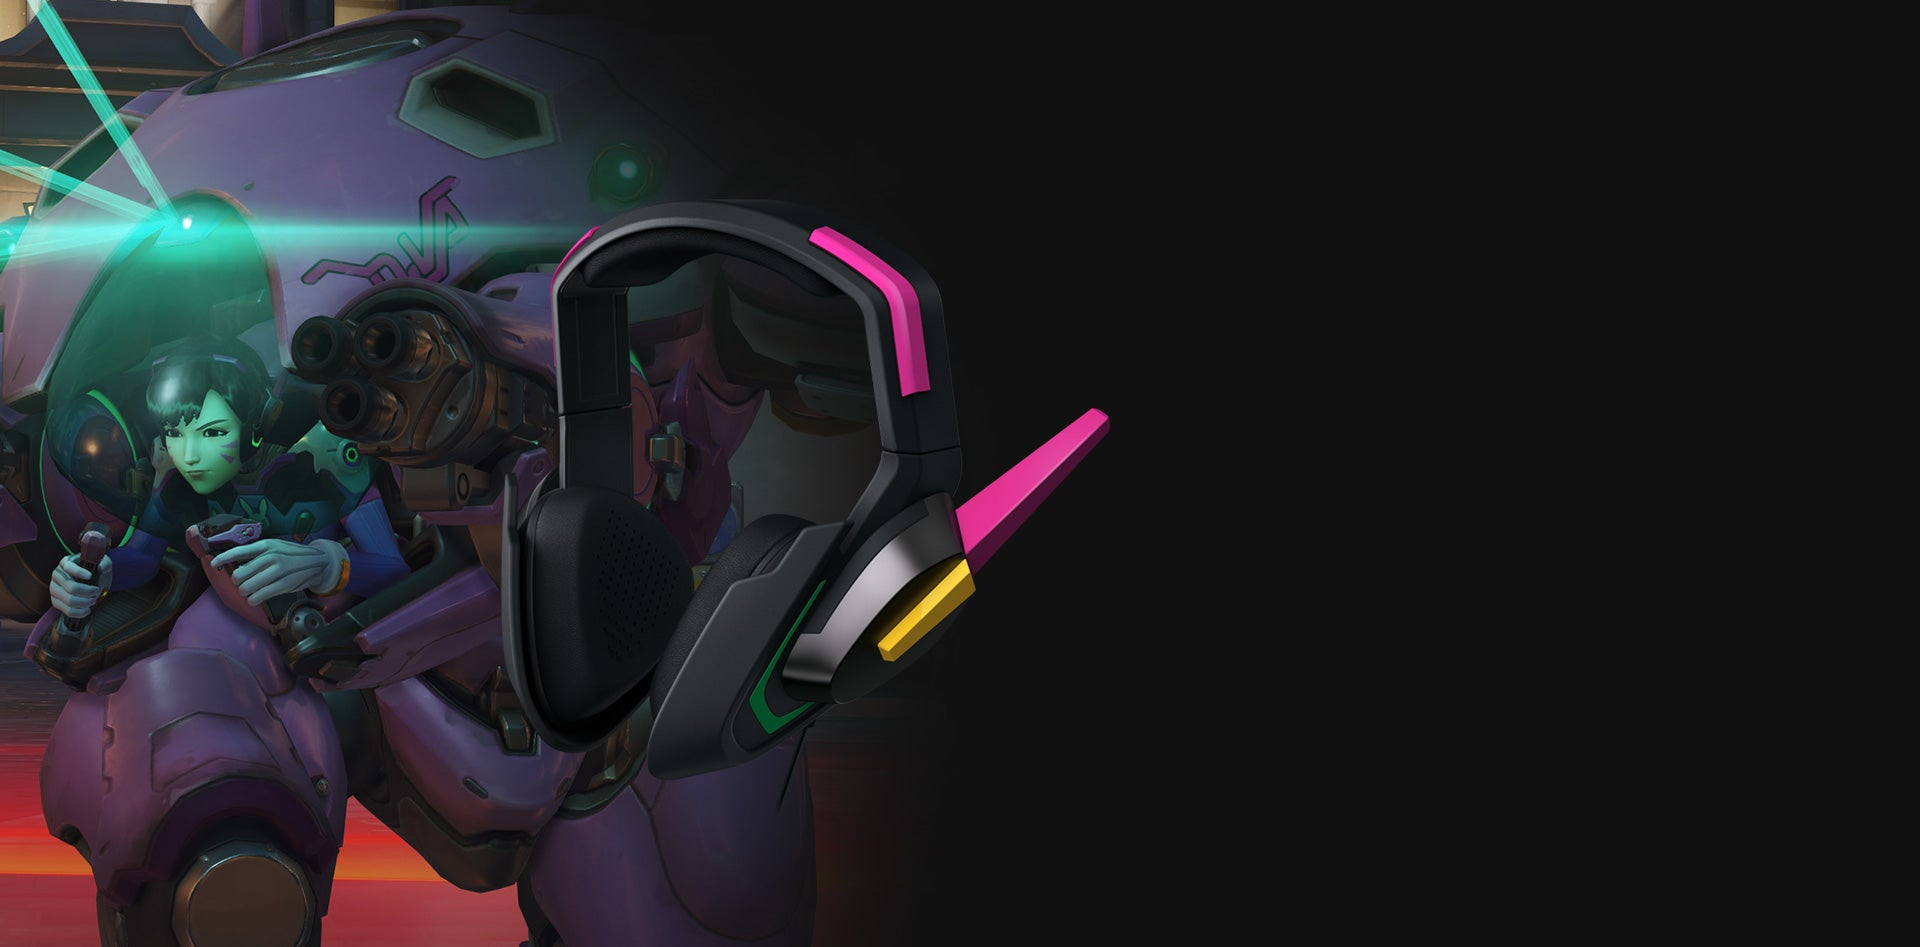 MEKA Activated New Razer Gaming Line Lets You Harness Your Inner DVa